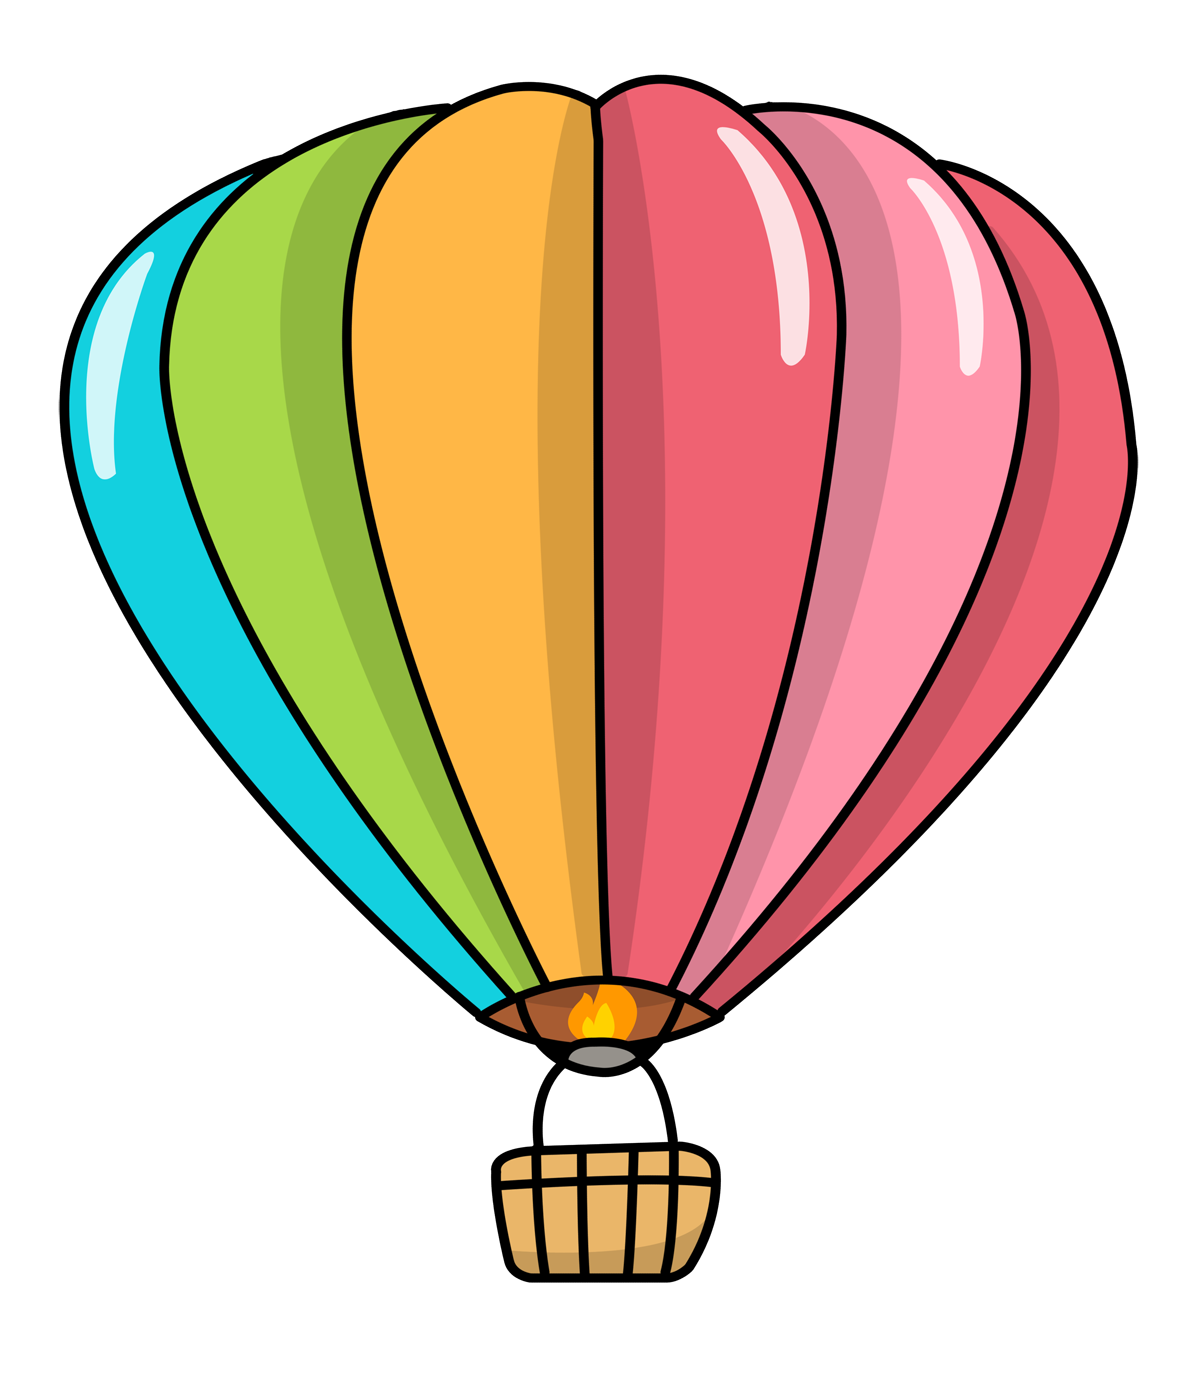 Steampunk clipart hot air balloon. Free to use public